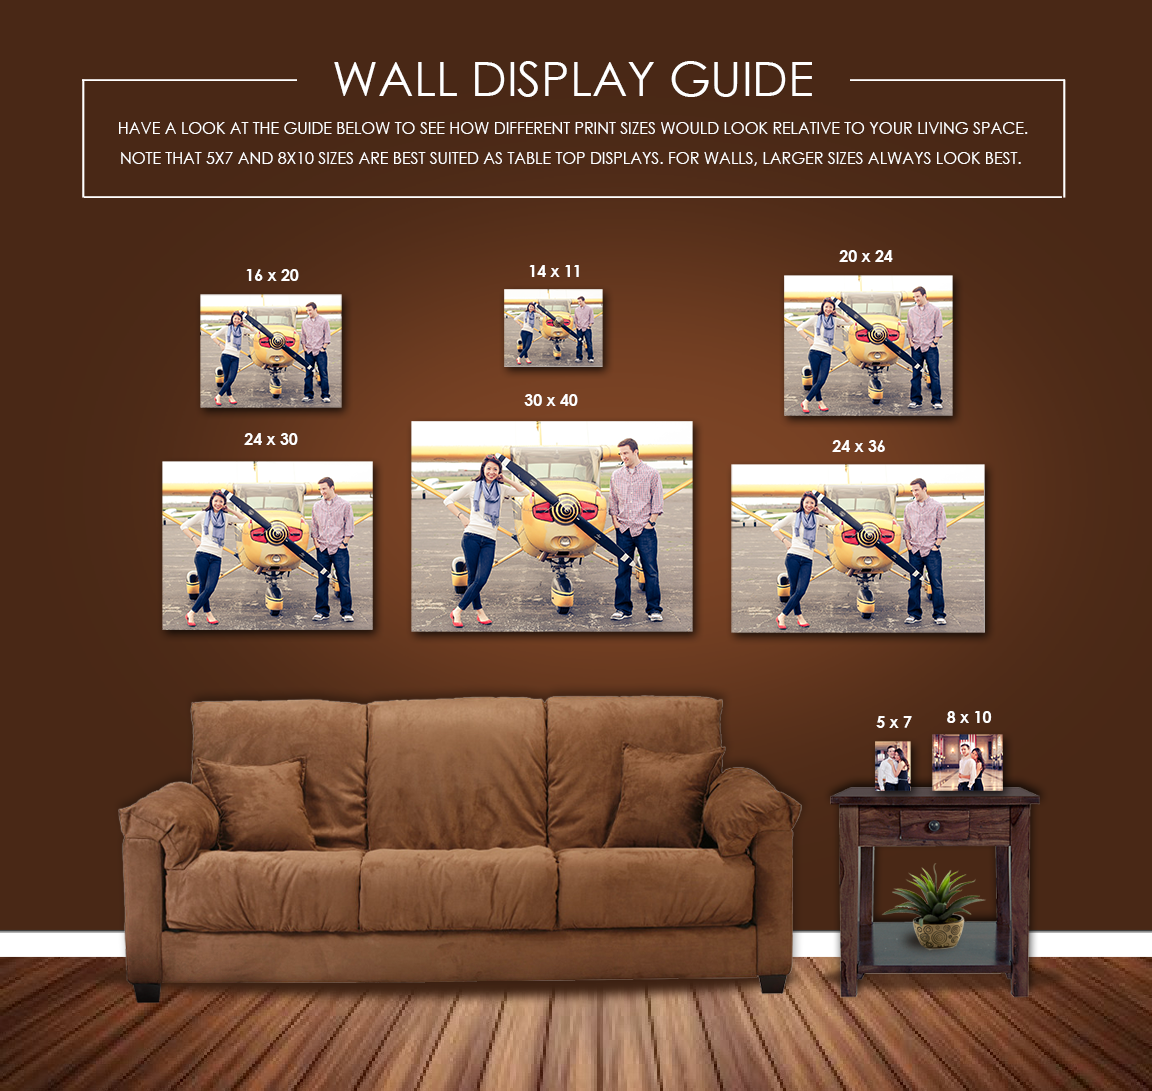 16x20 11x14 11x14 Canvas Grouping Google Search Wall Display Portrait Wall Canvas Groupings